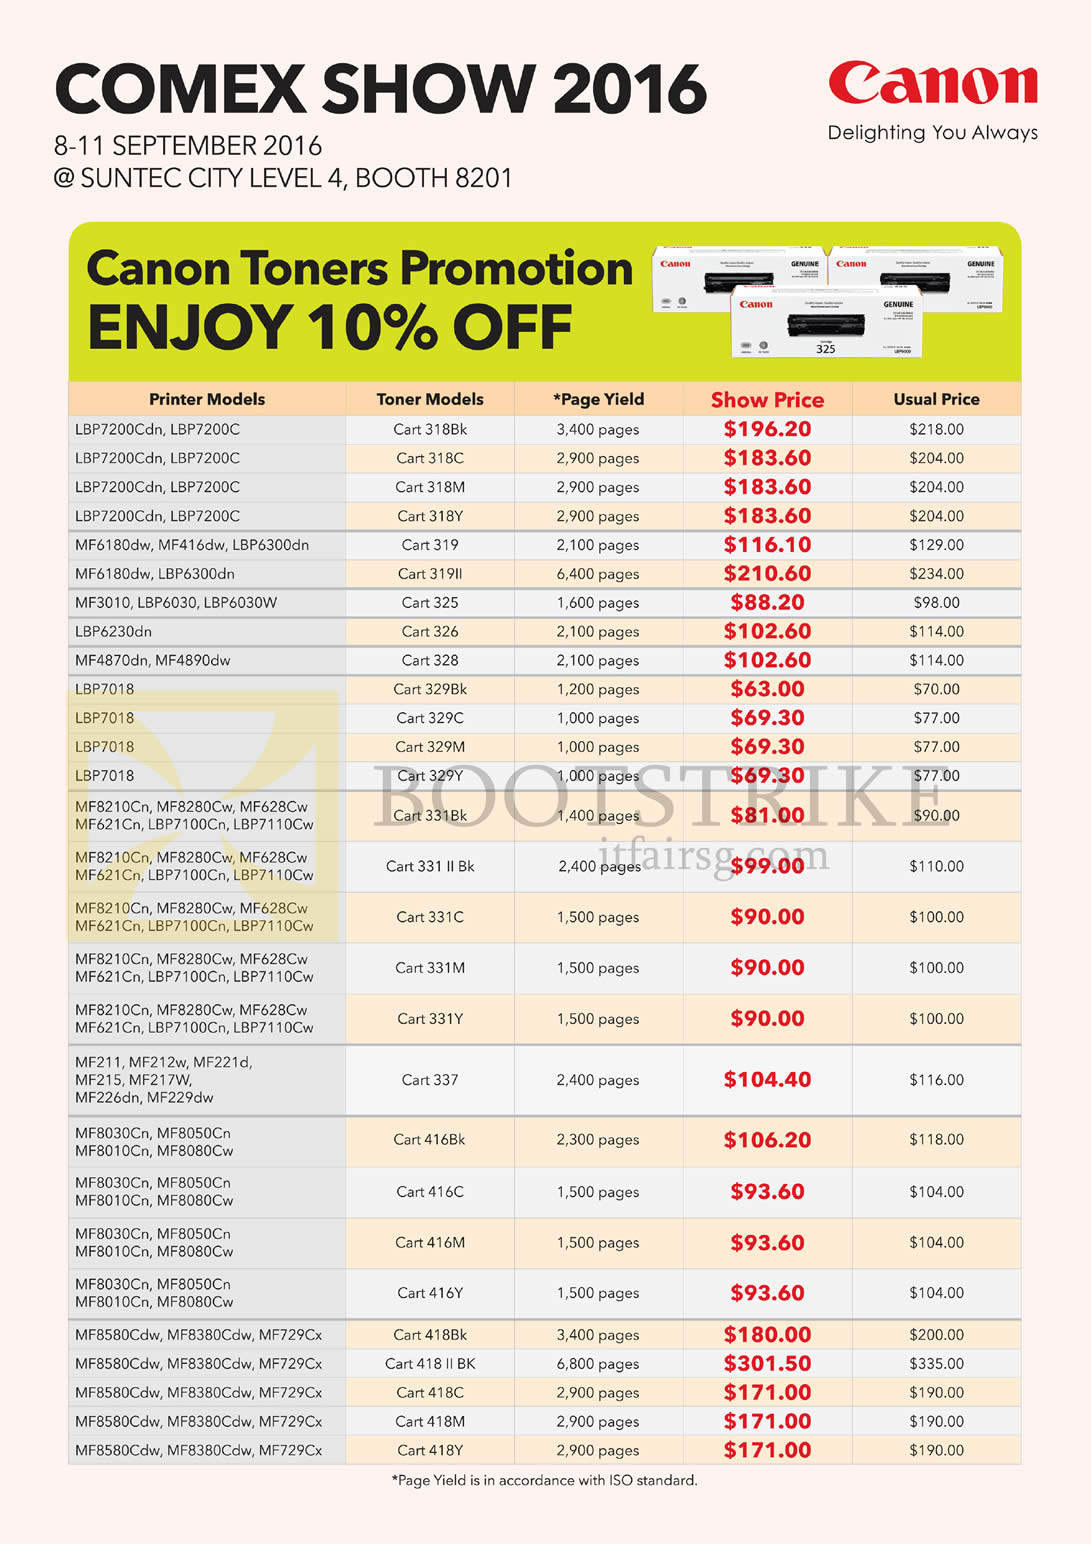 COMEX 2016 price list image brochure of Canon Toners 10 Percent Off, LBP, MF Series